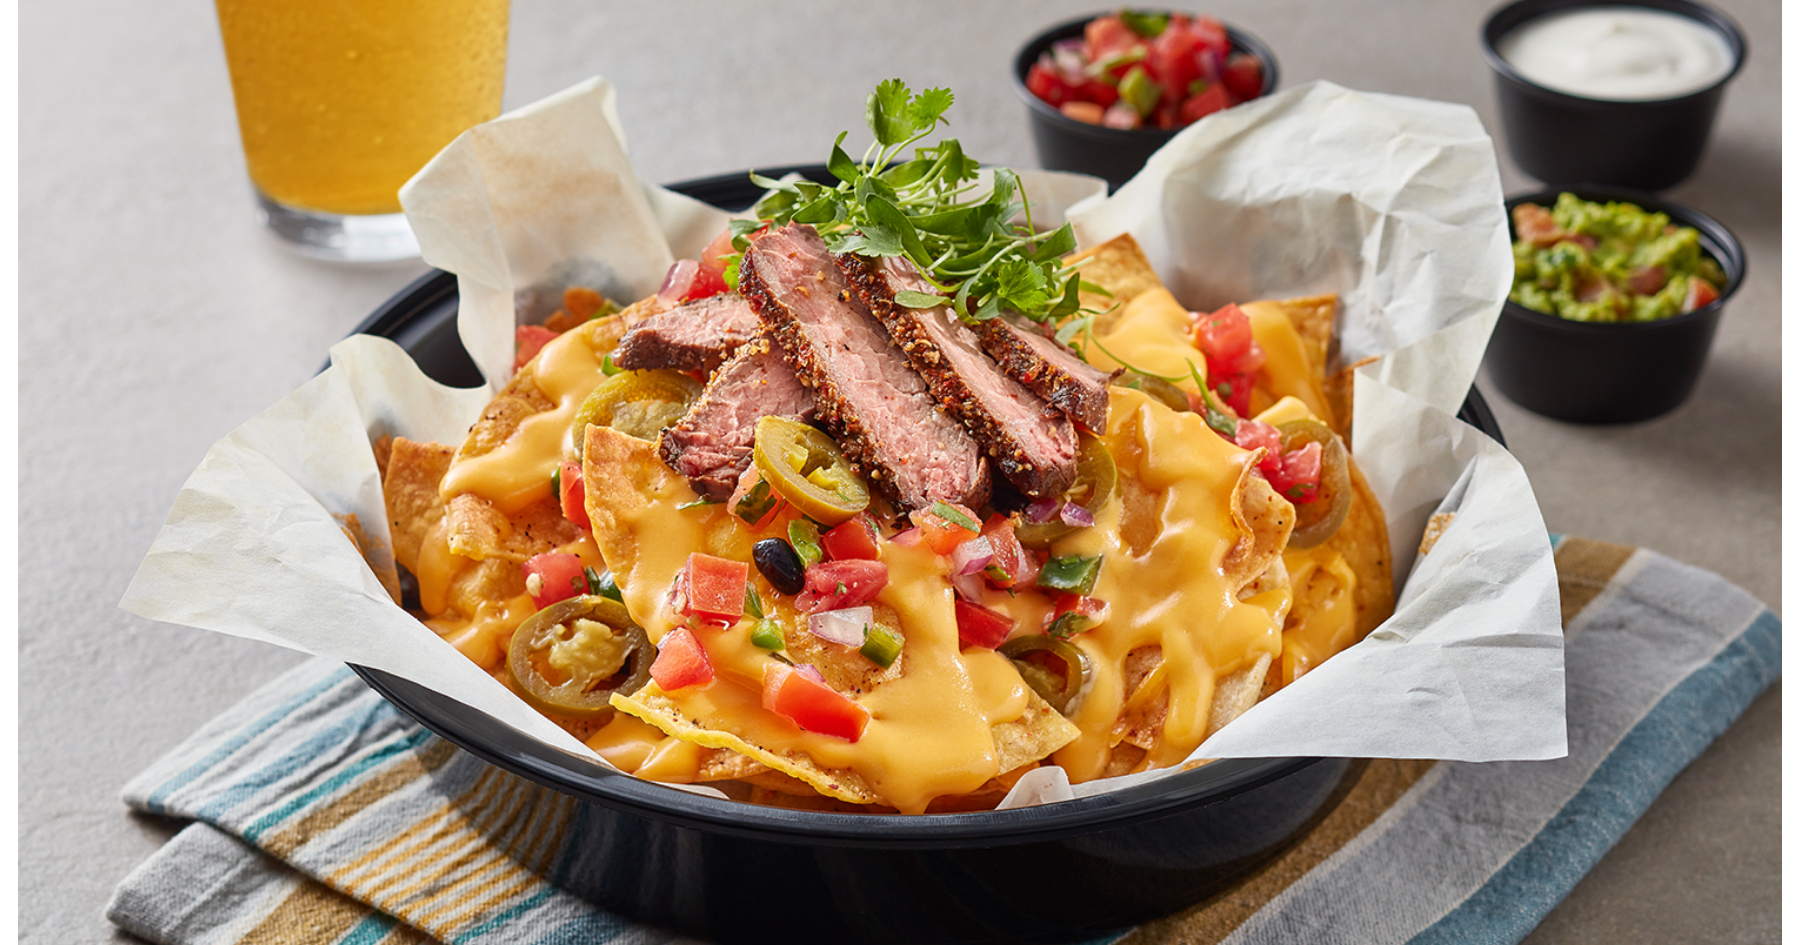 Nachos topped with cheese and steak